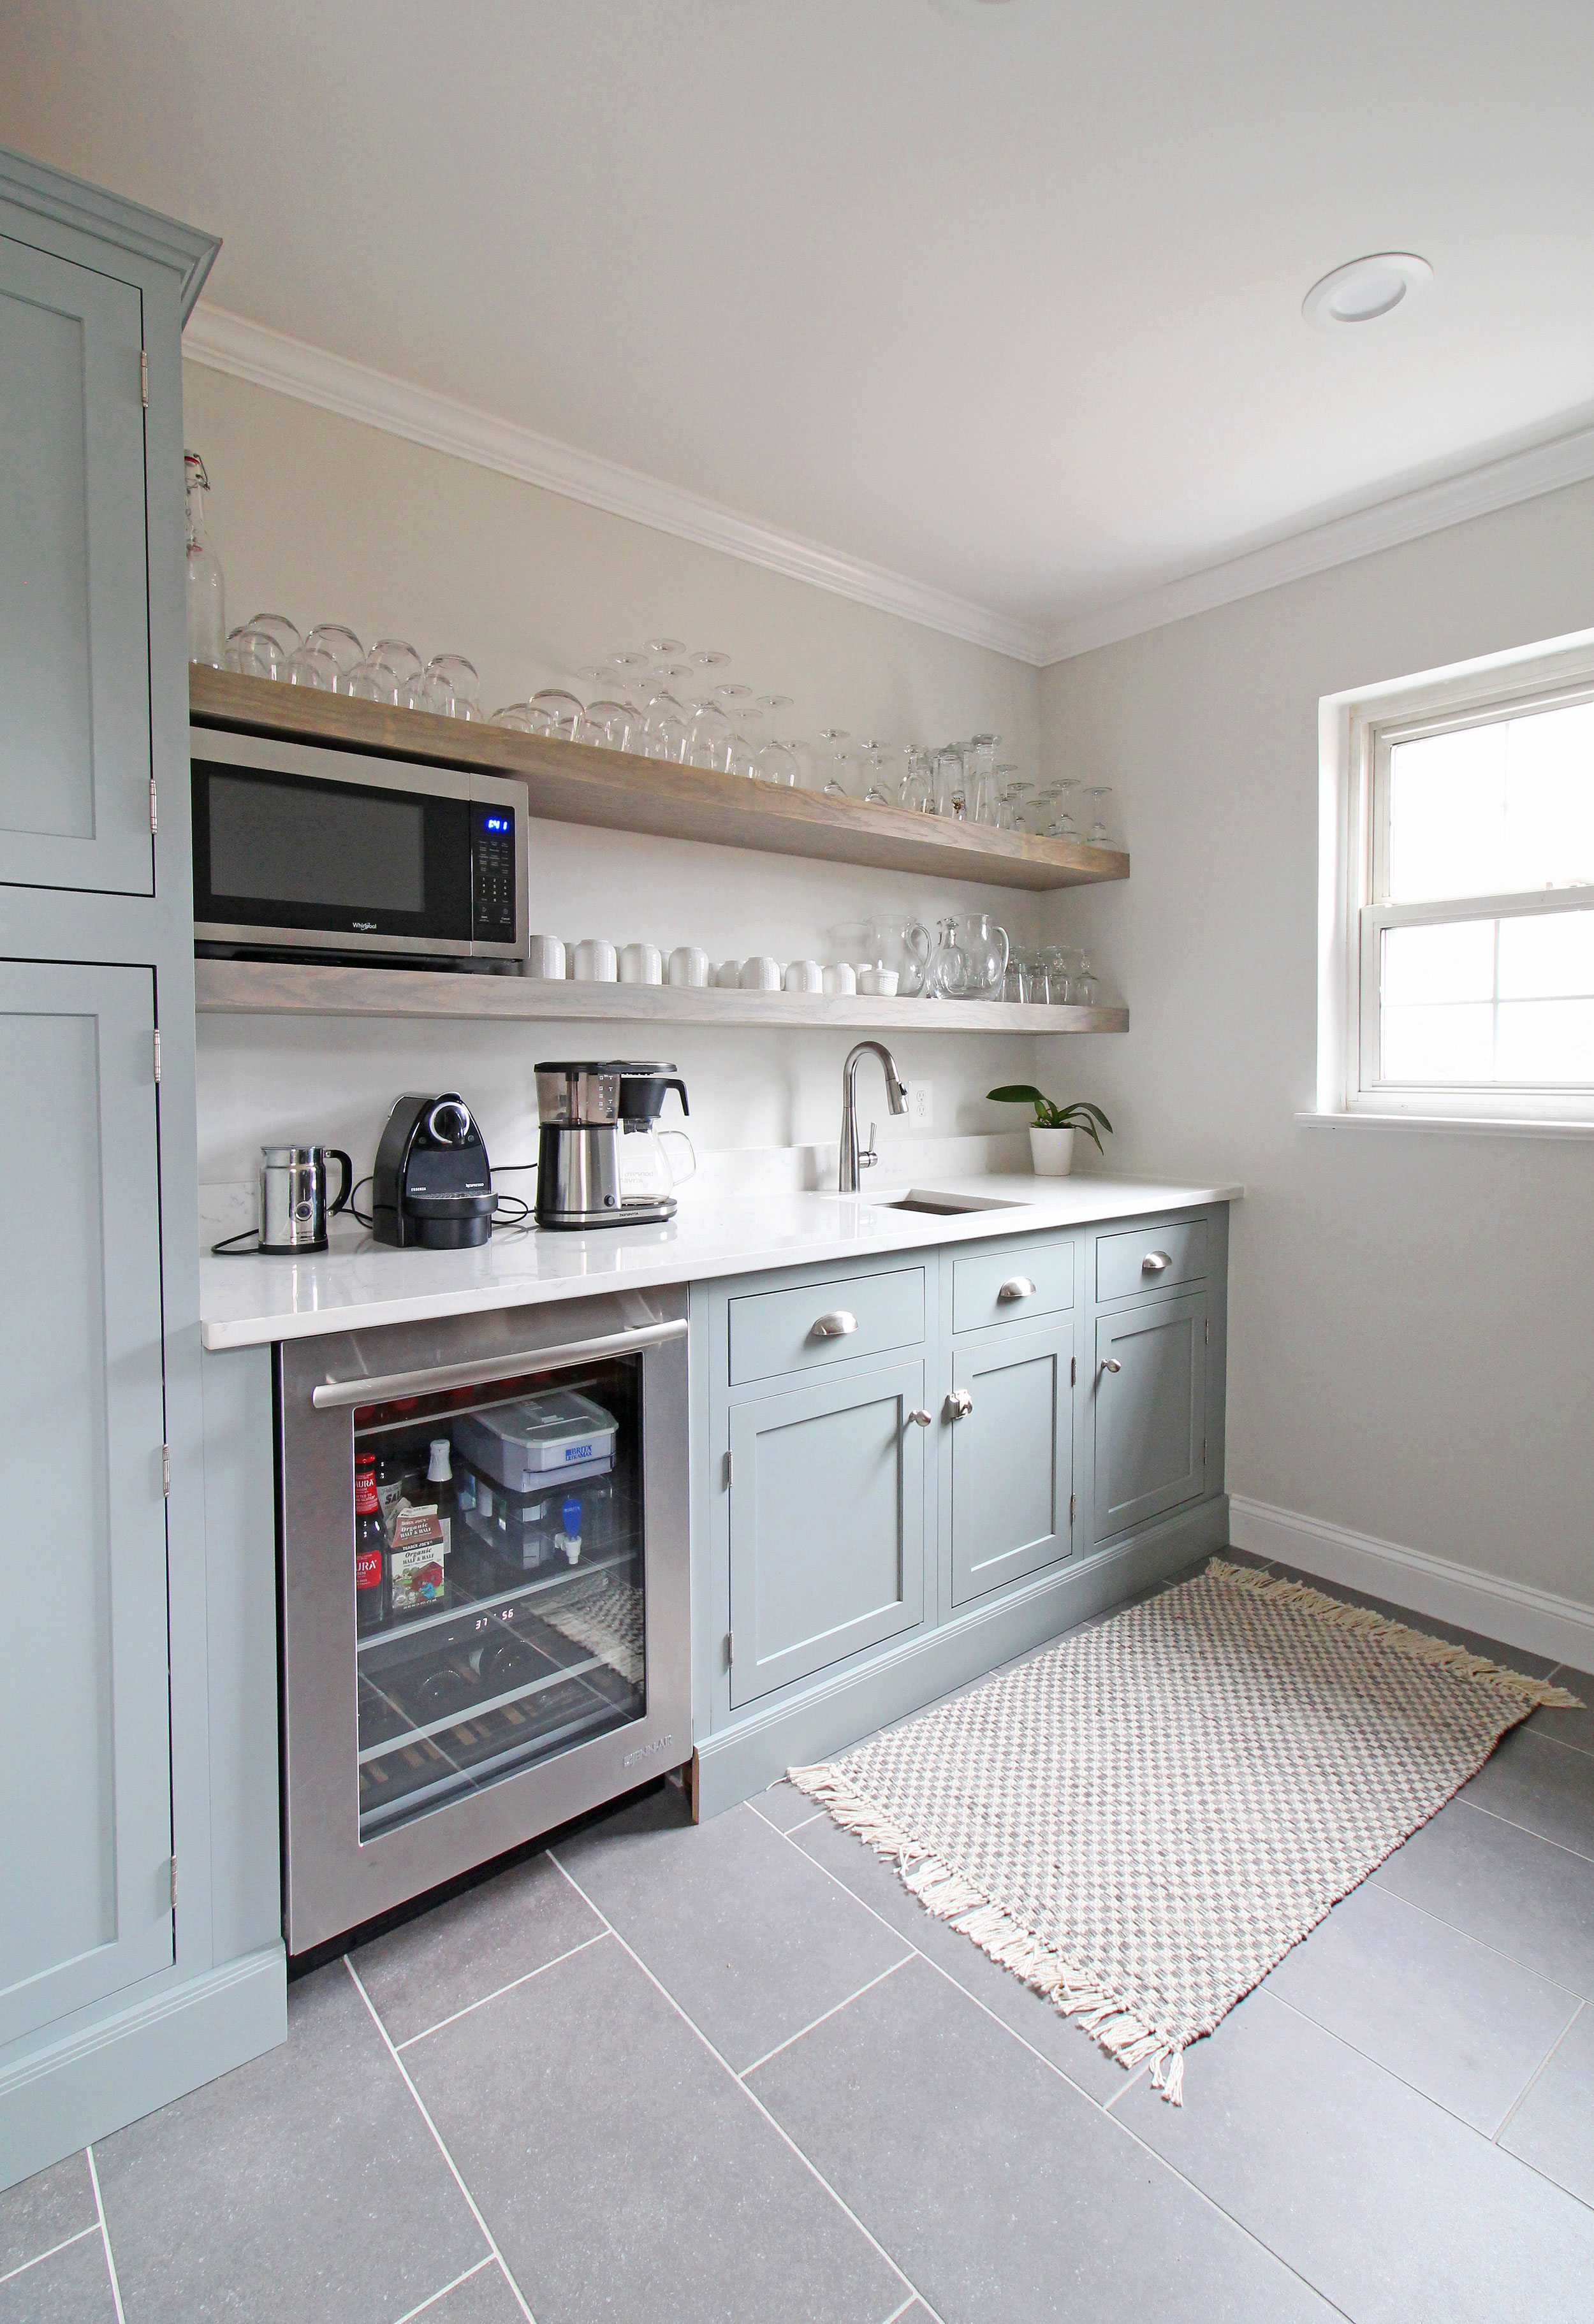 The blue cabinets and open shelving in this butler's pantry provide extra storage as well as a prep area that's adjacent to a white kitchen.